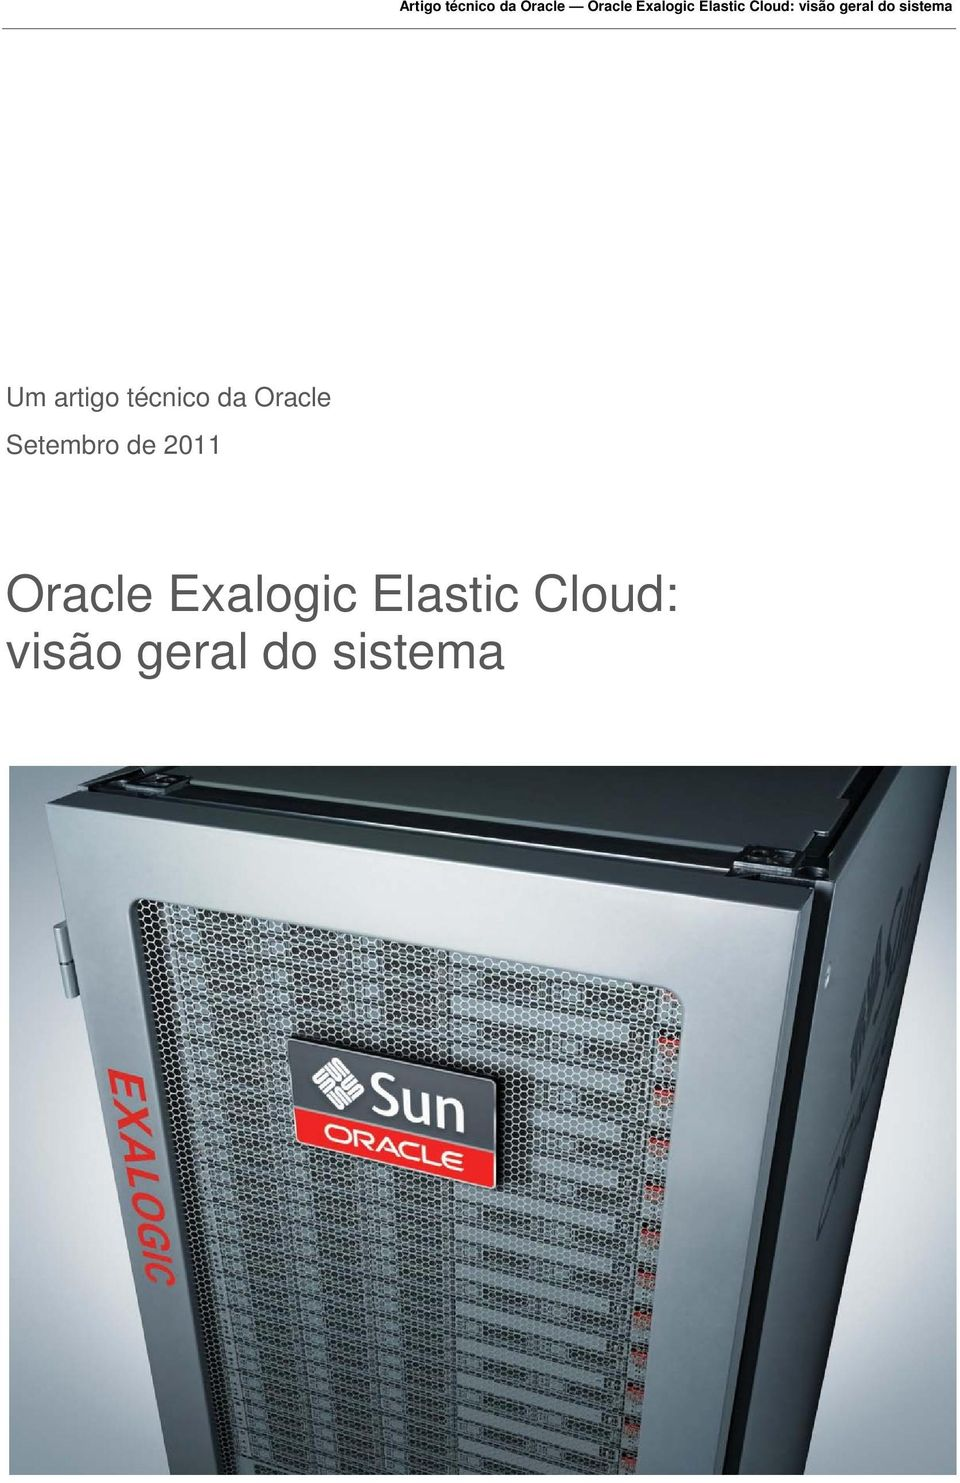 Oracle Exalogic Elastic